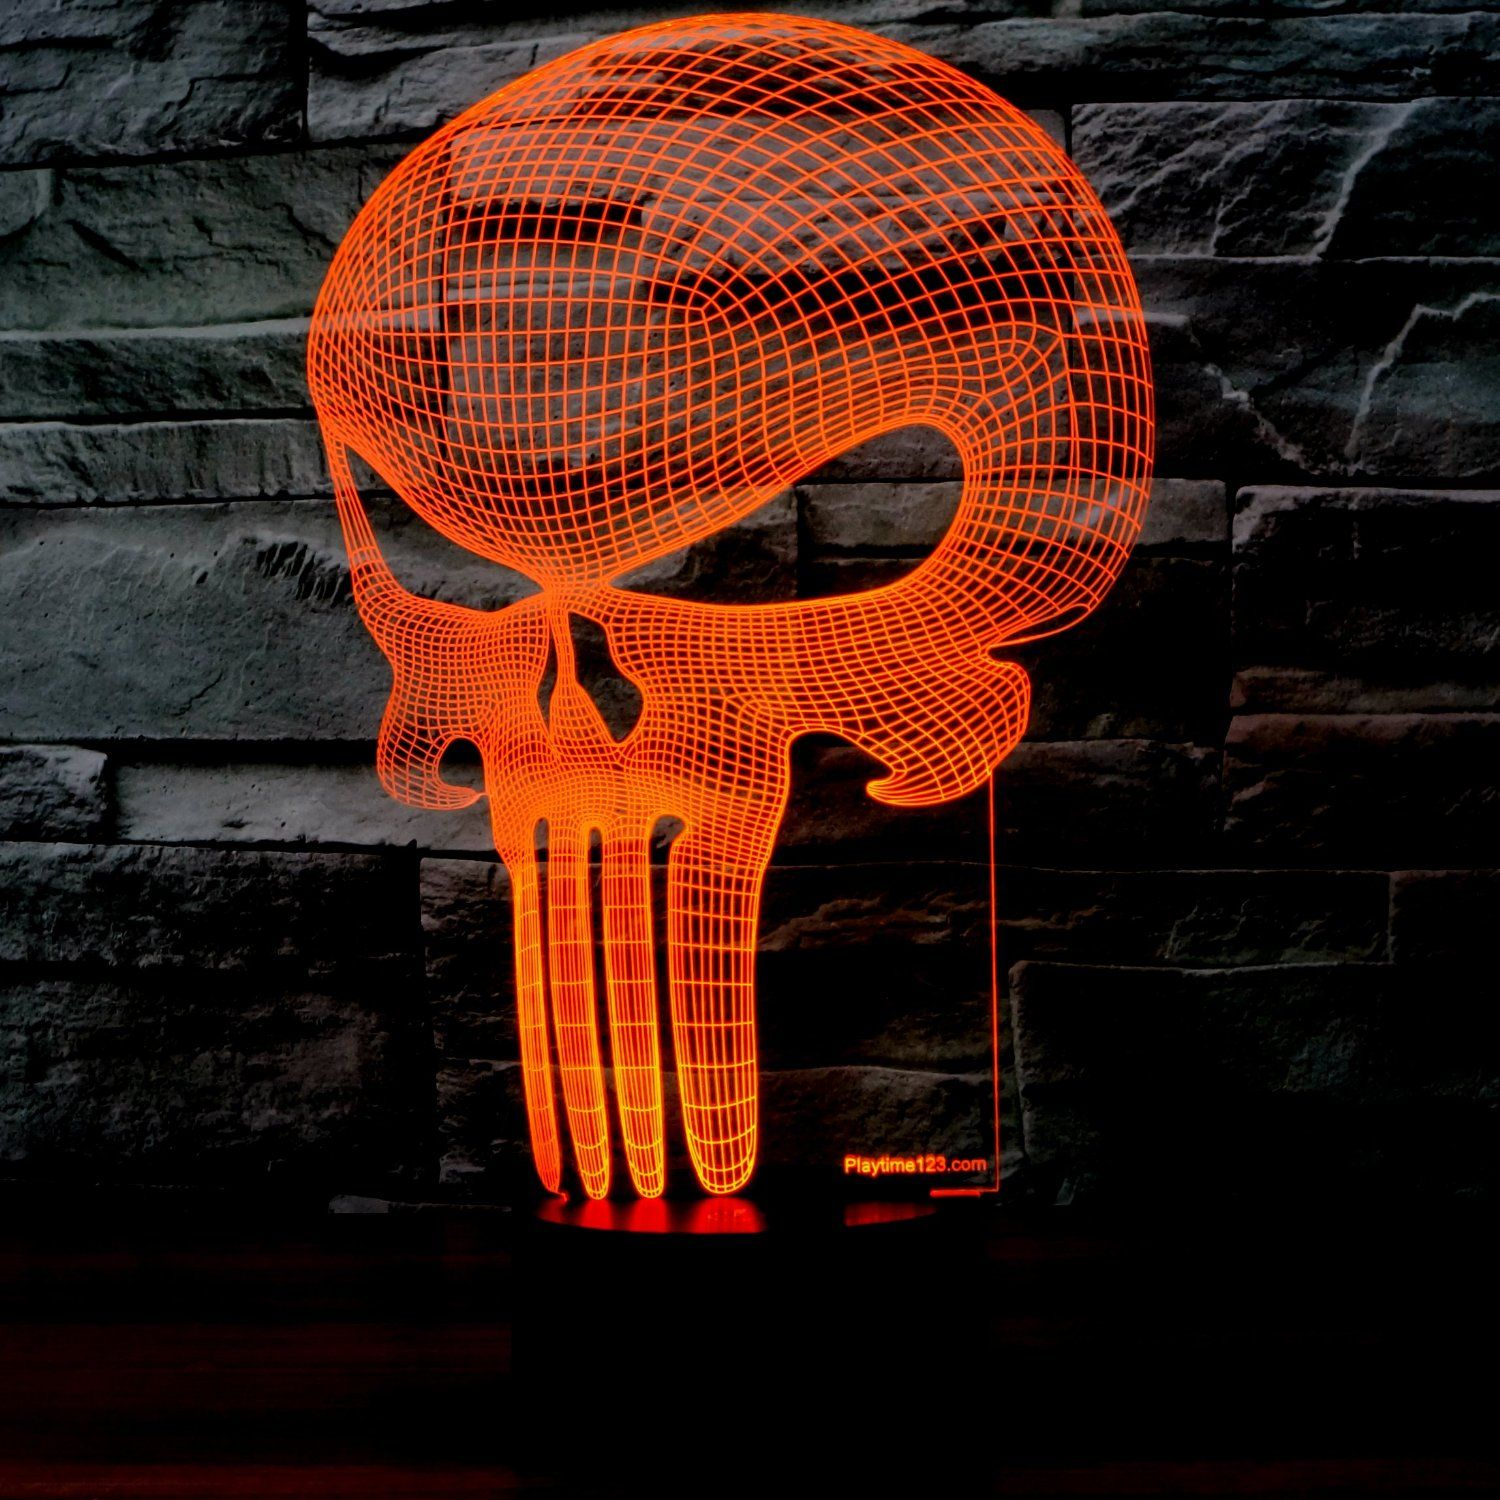 3D Punisher Skull Lighting By Playtime 123 Is A Great